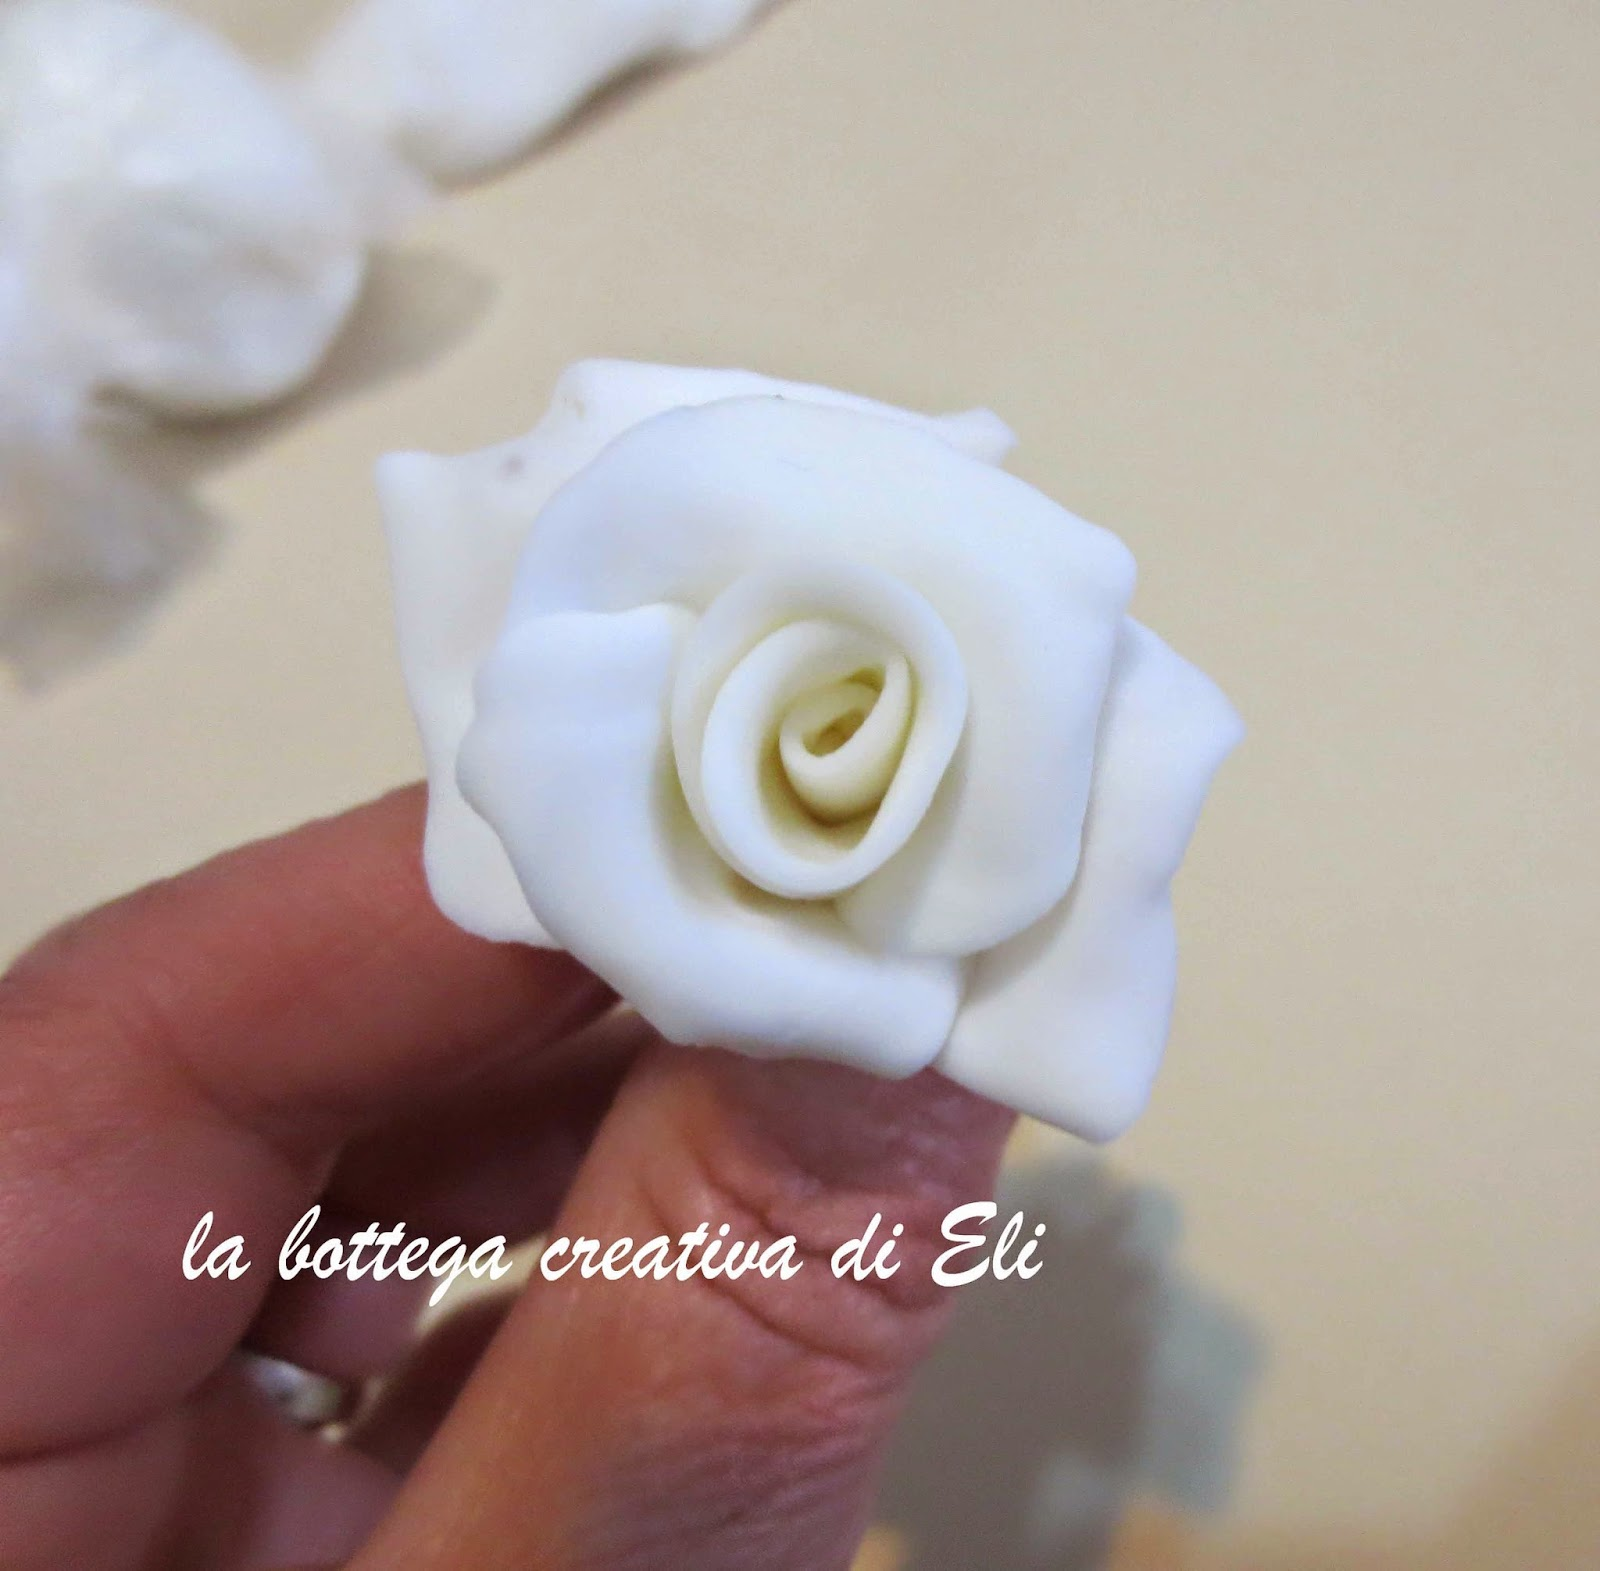 ttp://labottegacreativadieli.blogspot.it/2014/09/un-piccolo-ovale-con-le-rose-bianche-in-pasta-di-mais.html